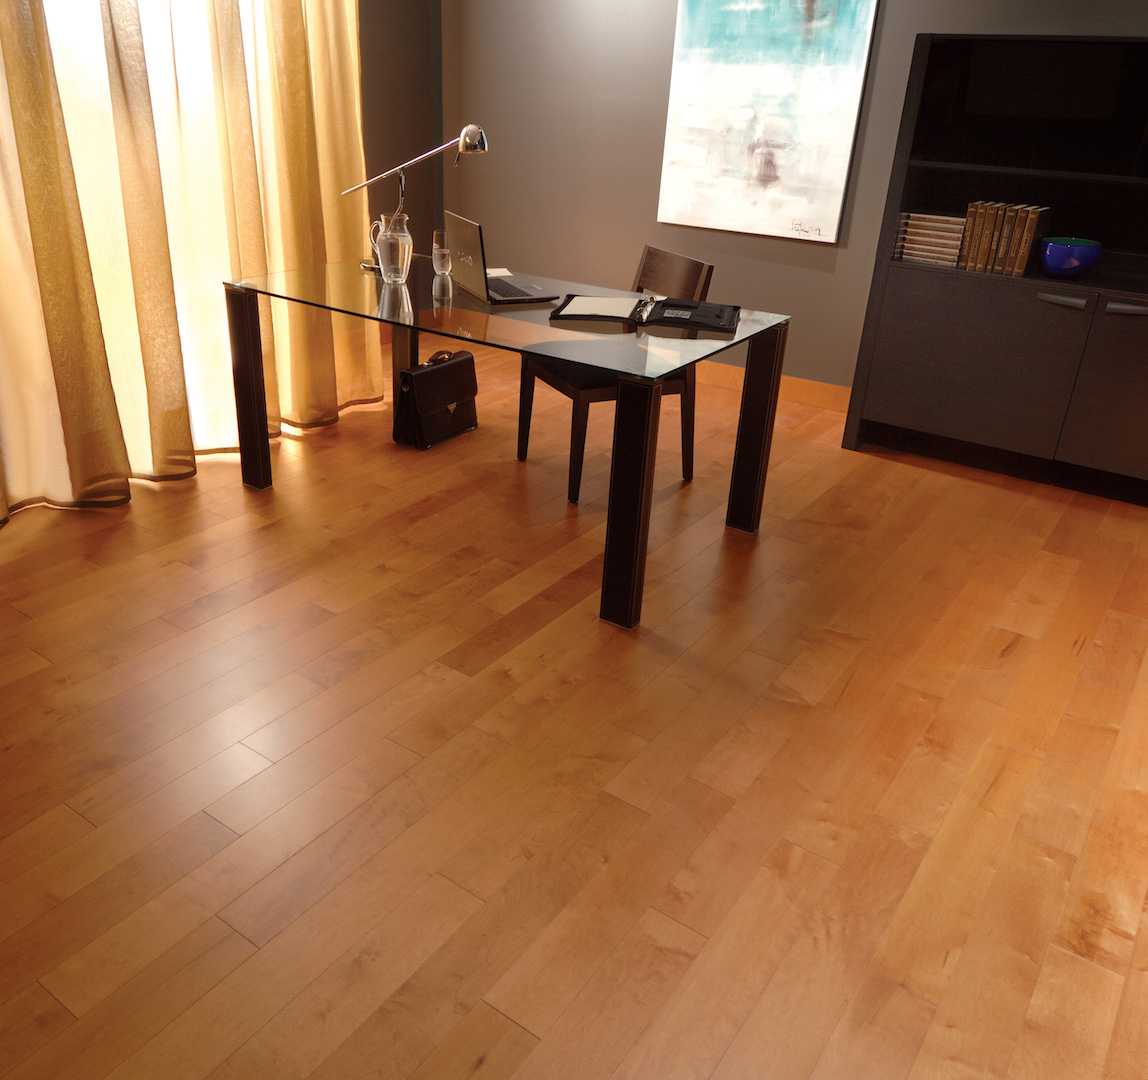 Vinyl flooring or linoleum floors tampa flooring company for Wooden floor lino